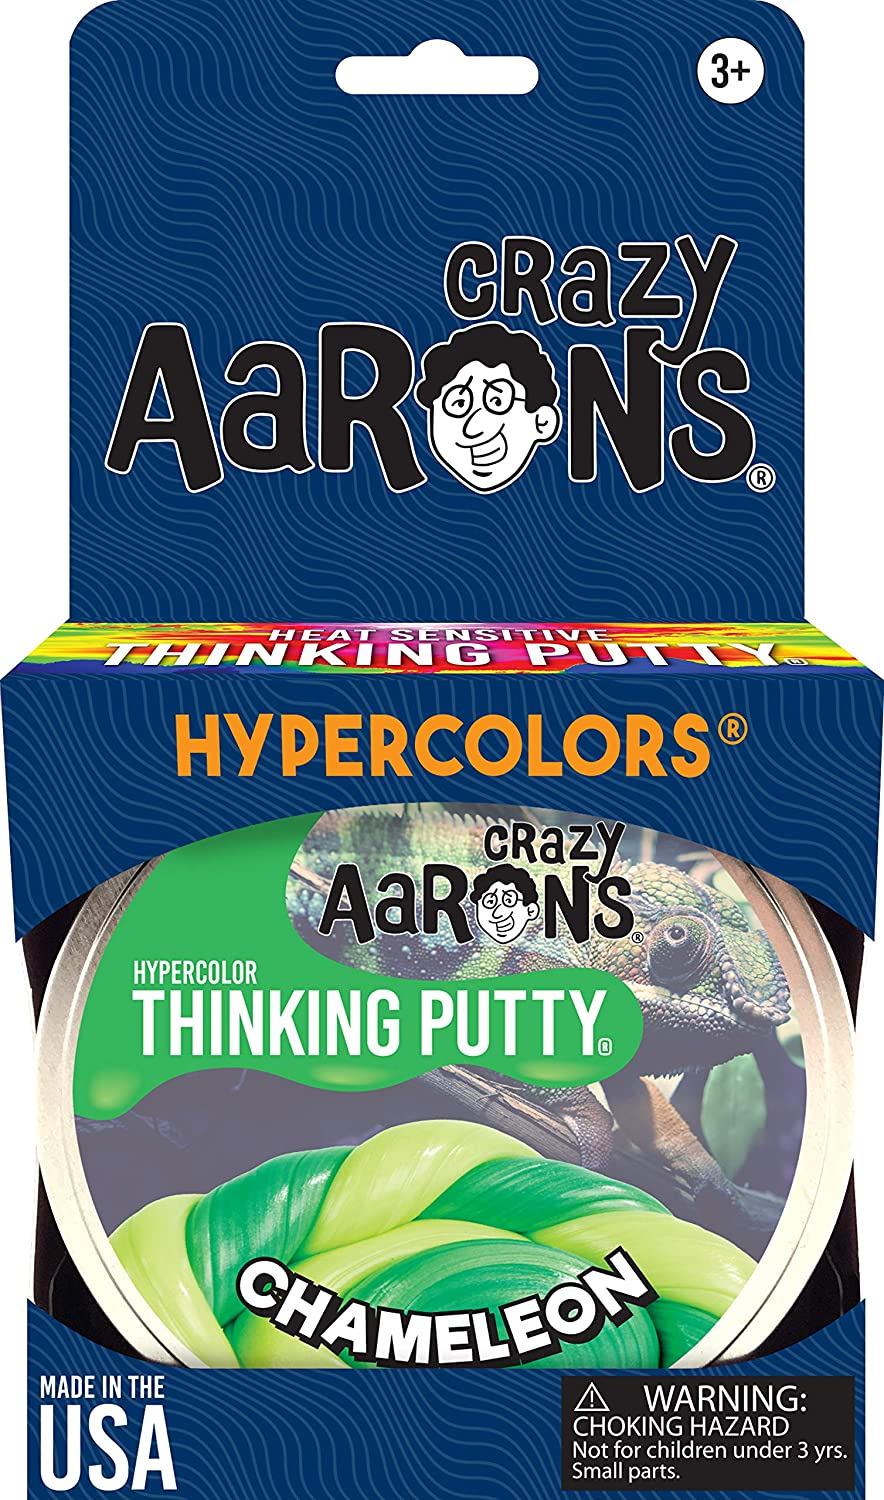 amazon com crazy aaron s thinking putty 3 2 ounce hypercolor